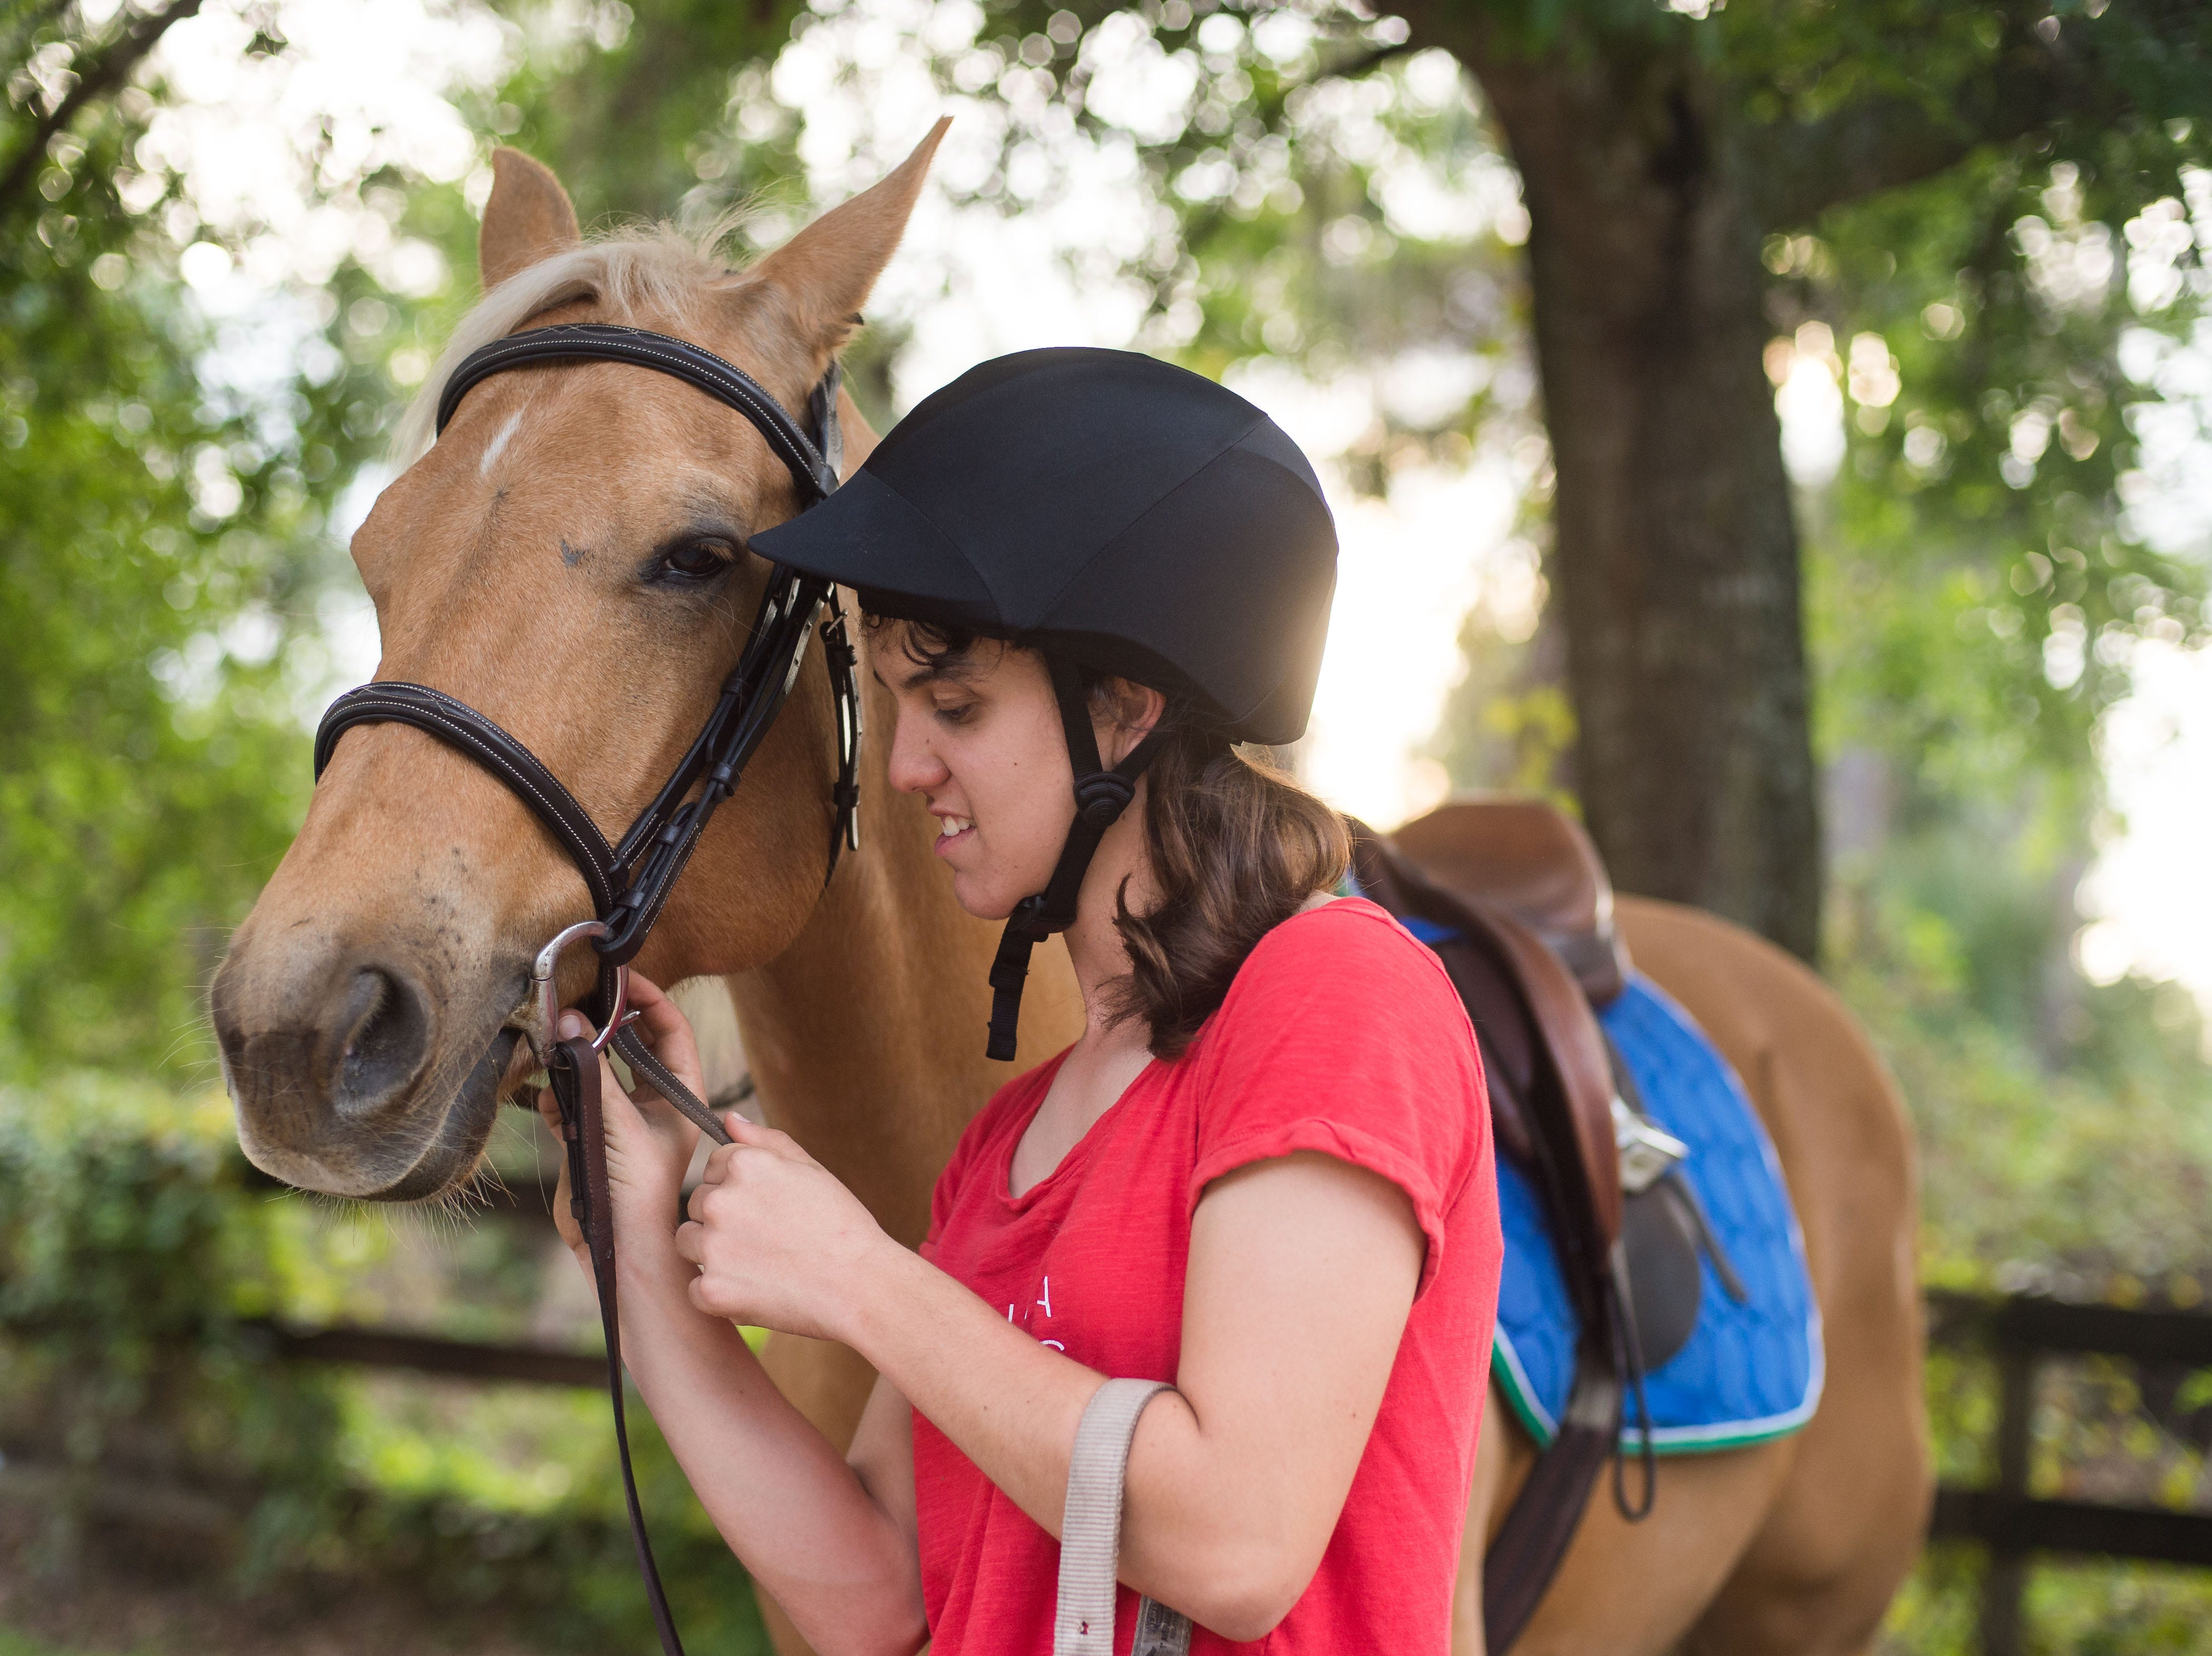 Equestrian Cori Davis, of Palm City, works with riding instructor Patty Nelson, of Stuart, and Jaye, one of her family's horses, at Davis' home March 1, 2019, in Palm City. Davis will be traveling to Abu Dhabi, United Arab Emirates, to compete in the 2019 Special Olympics World Games, which begin March 14.